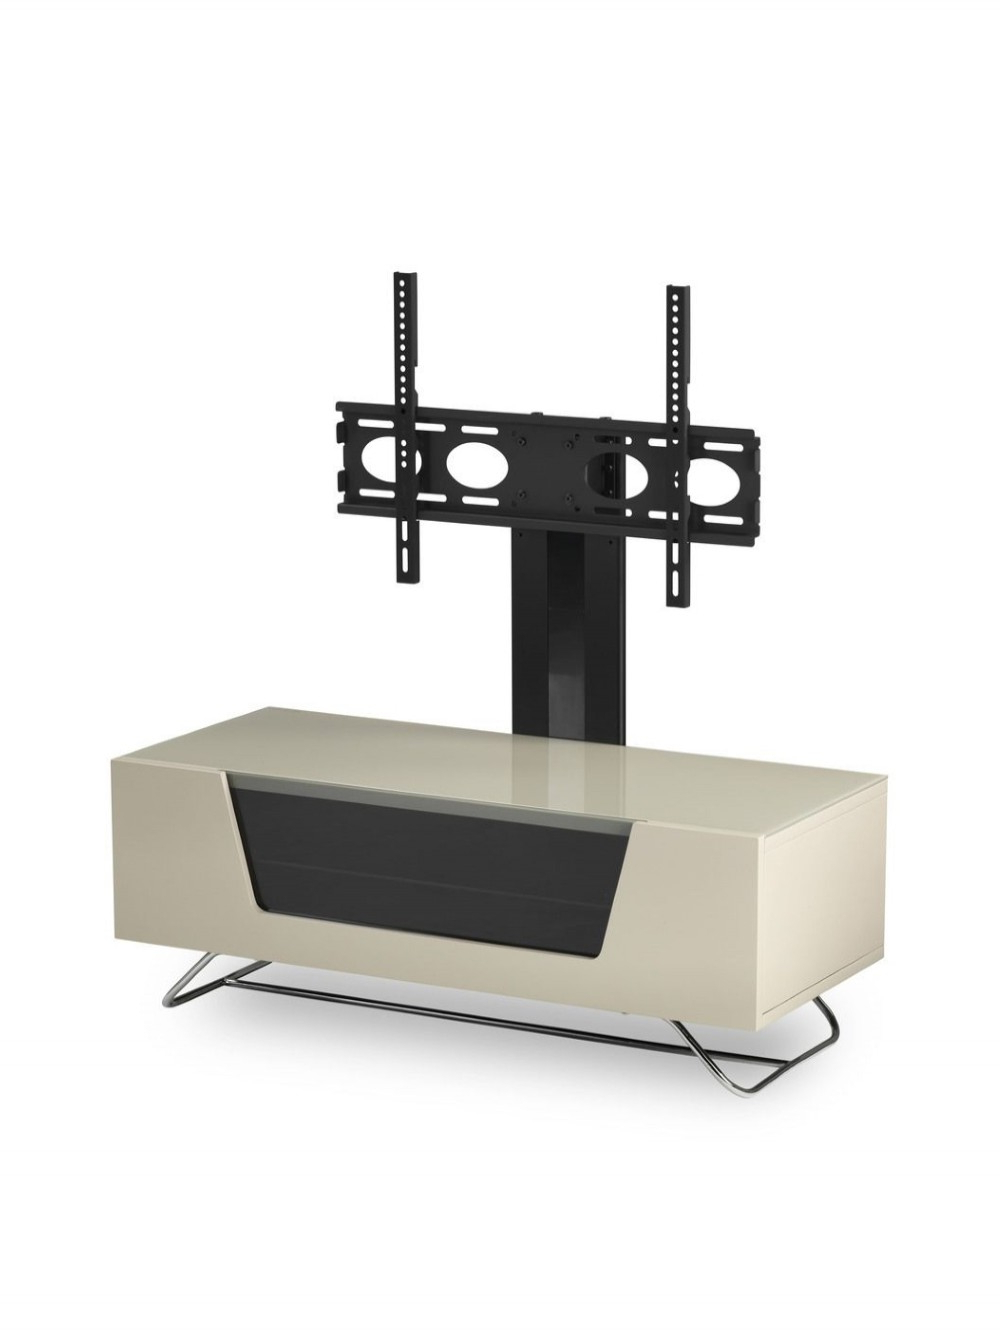 Chromium Tv Stands Throughout Fashionable Alphason Chromium Cantilever Tv Stand Cro2 1200bkt Iv (View 14 of 25)